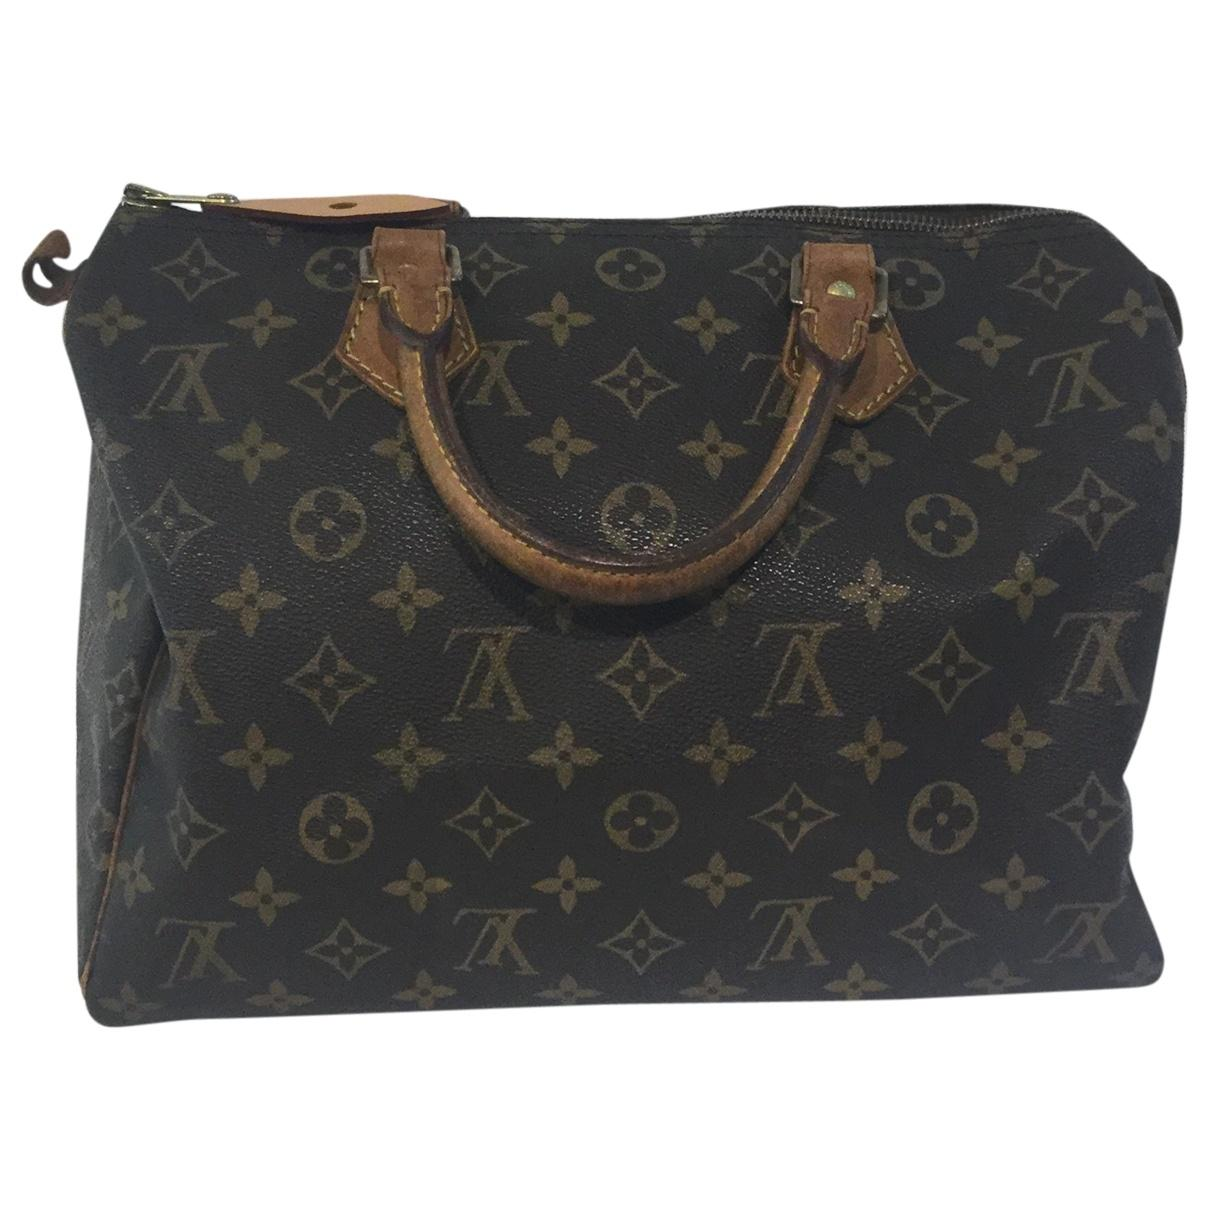 2638f163d0f5 Lyst - Louis Vuitton Pre-owned Vintage Speedy Brown Cloth Handbags ...